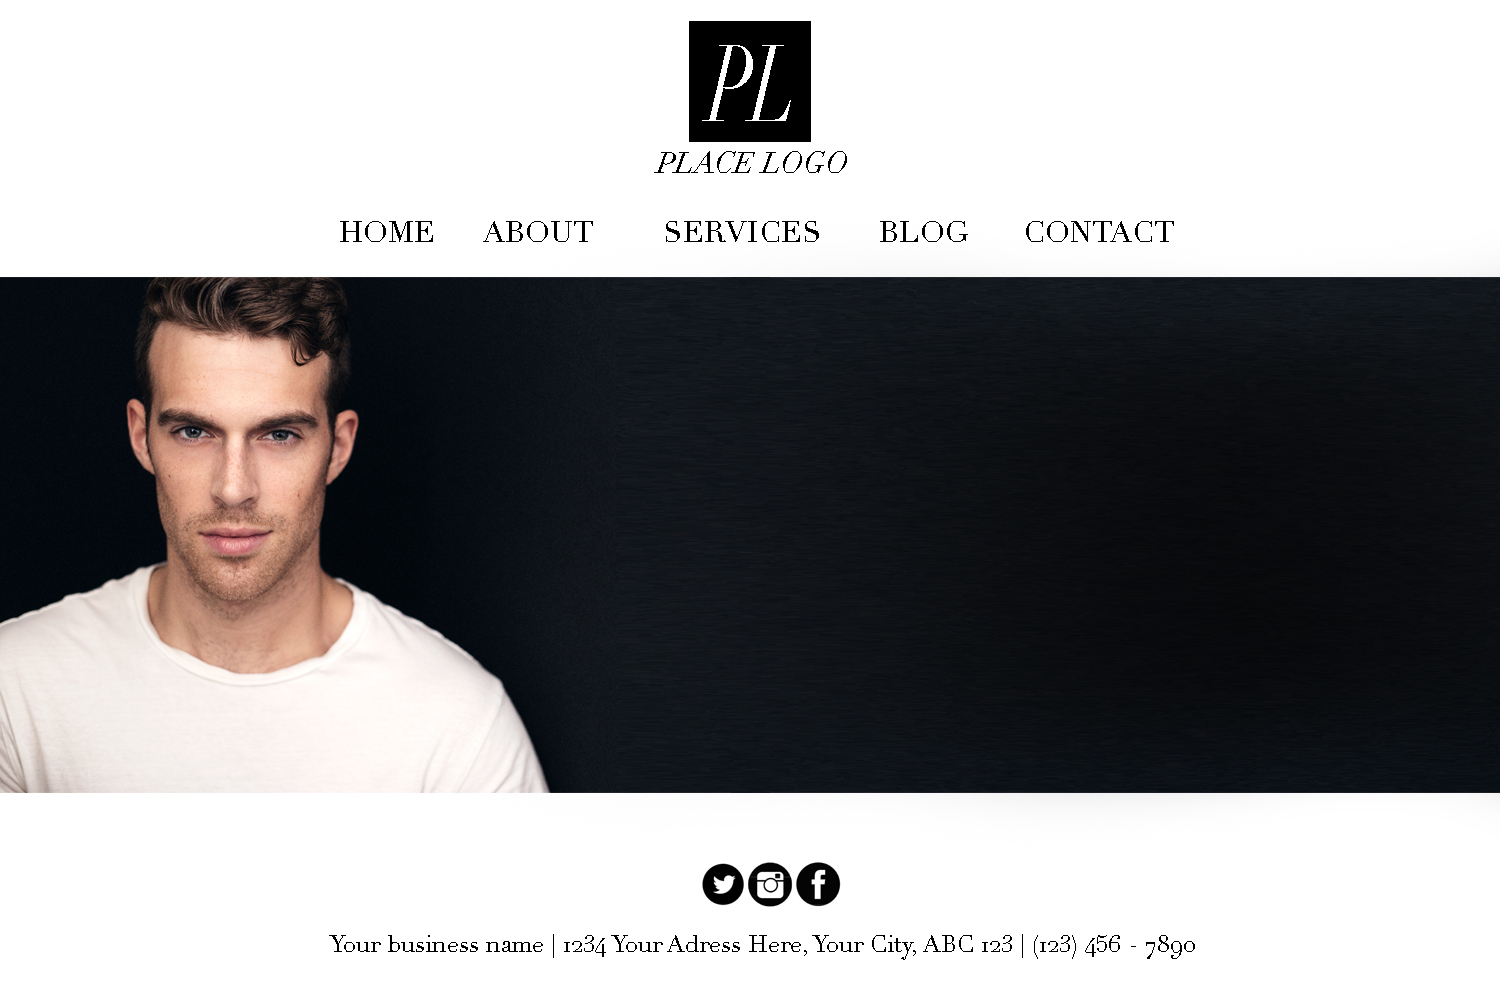 Example of a website banner created from the above headshot.